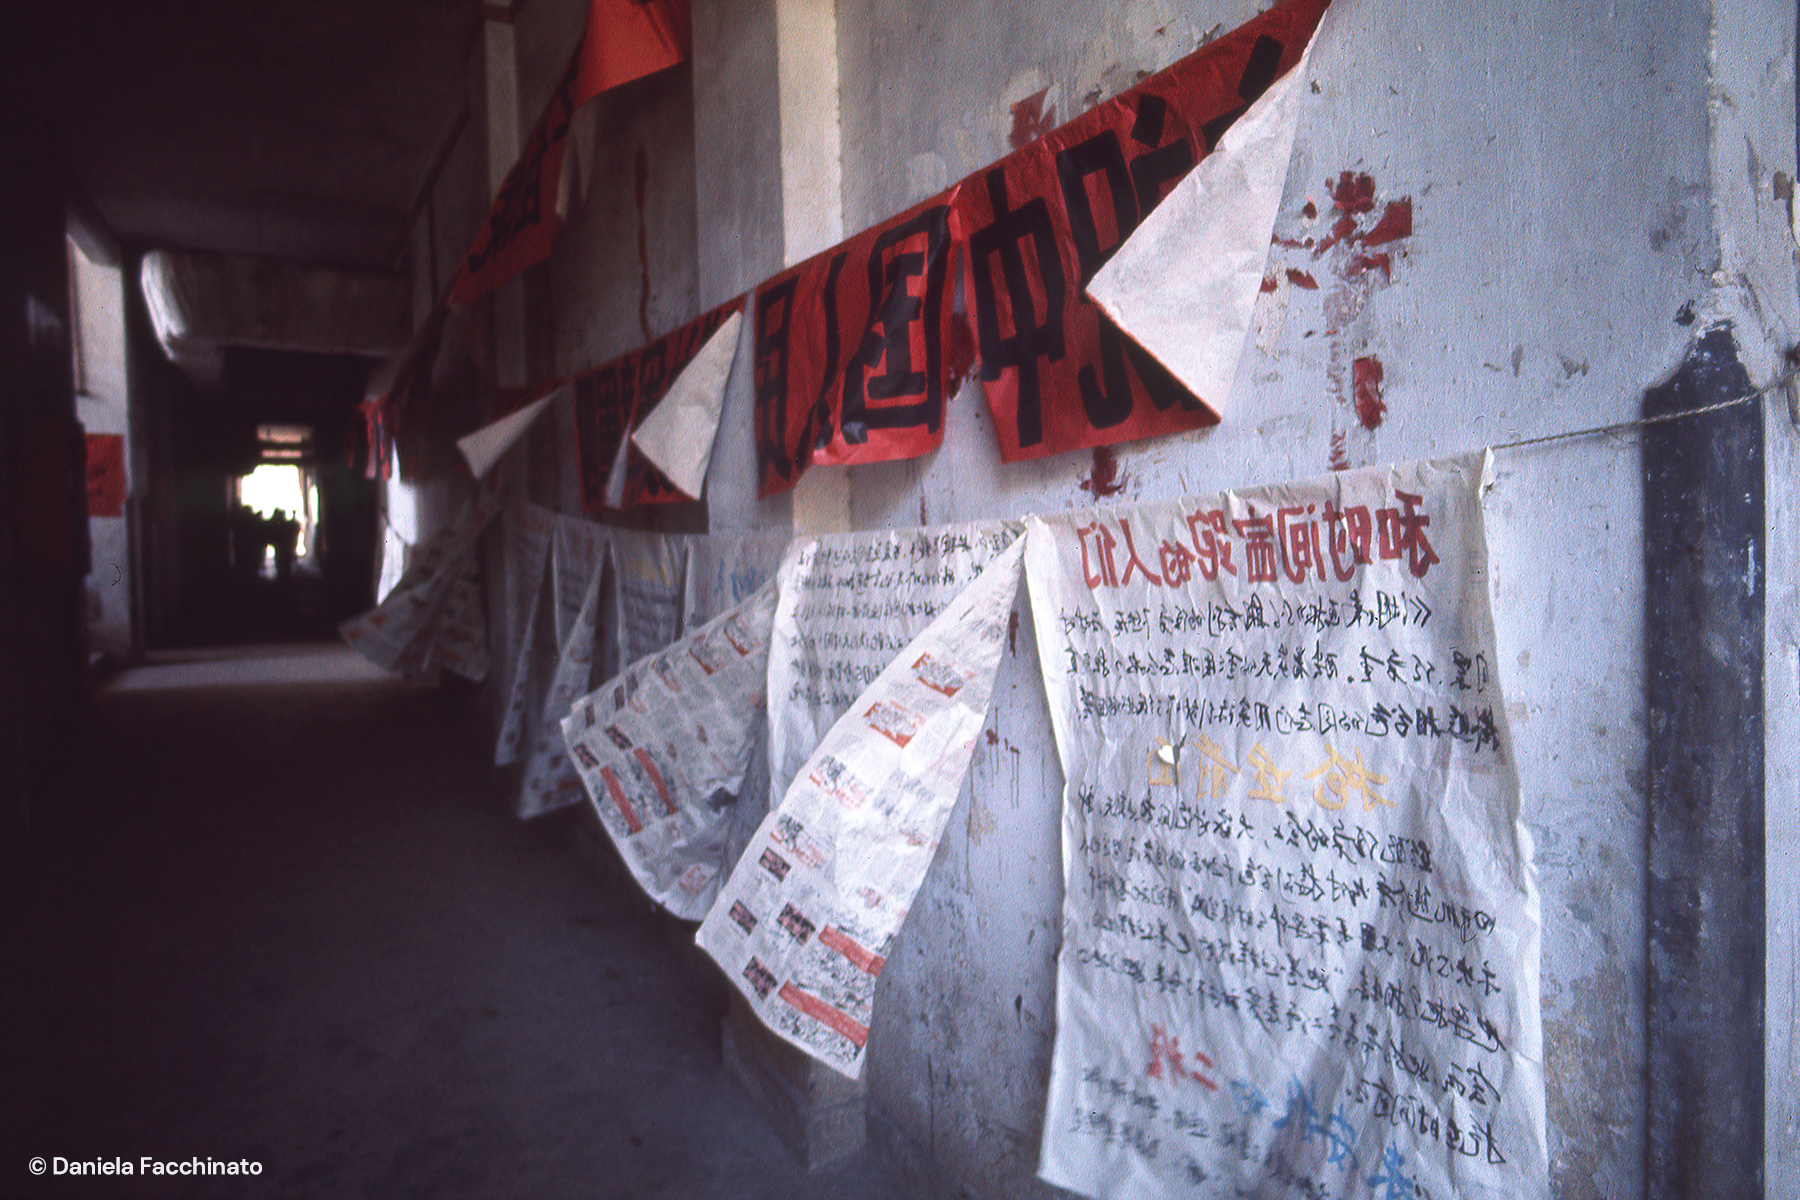 China 1976. Dazibao posted on city and factories walls to encourage political debate